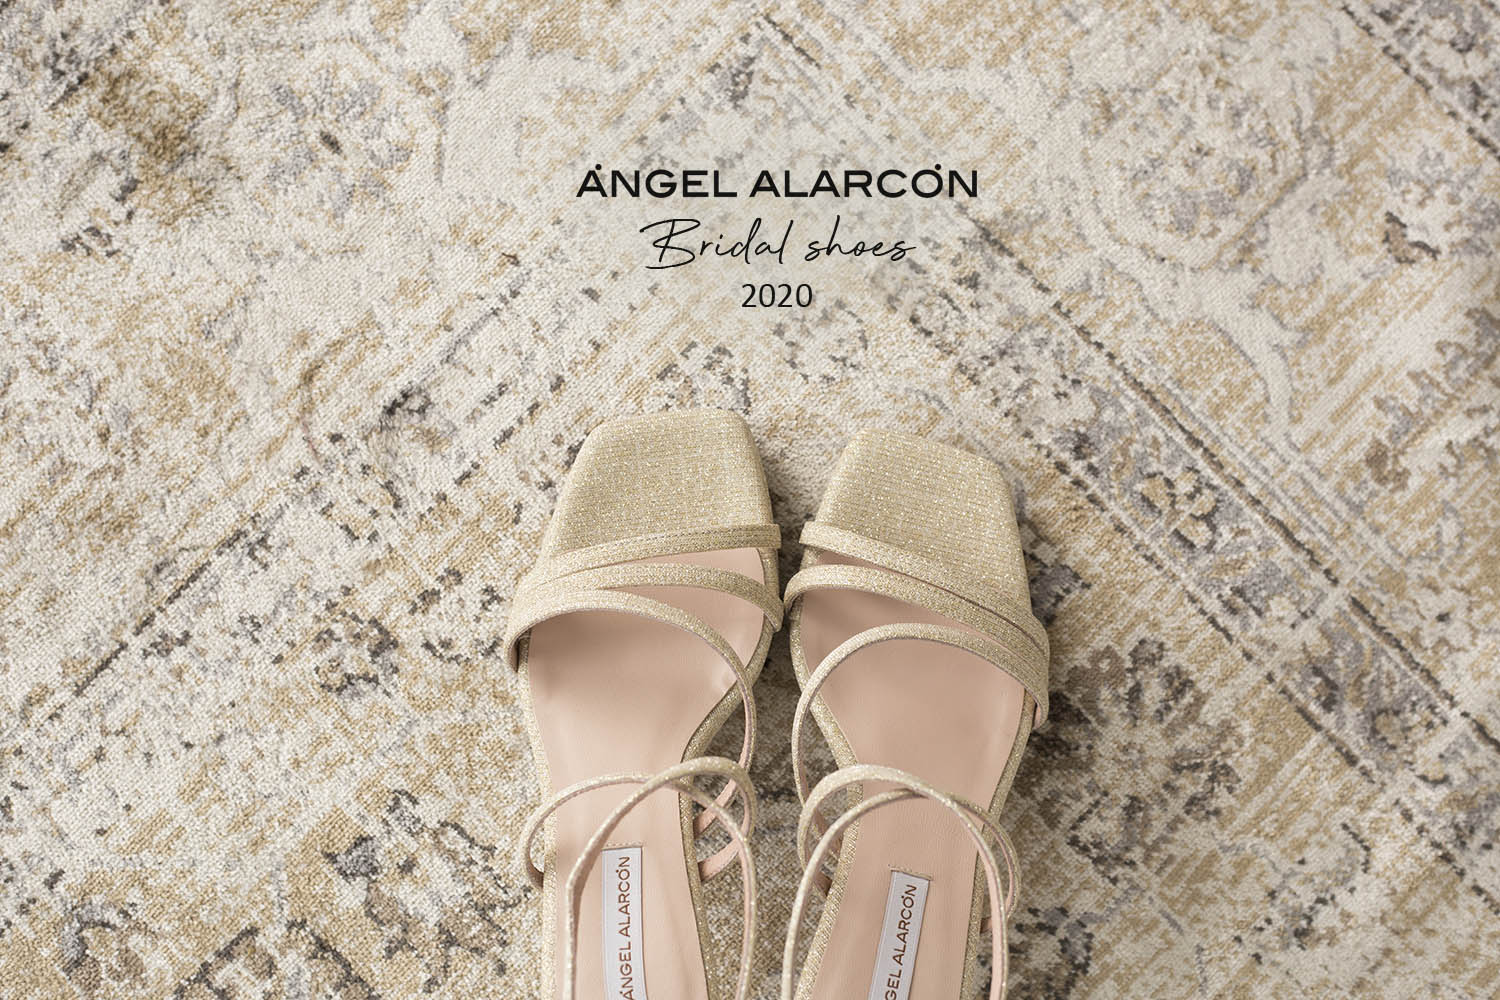 Angel alarcon 2021 golden wedding shoes 2020